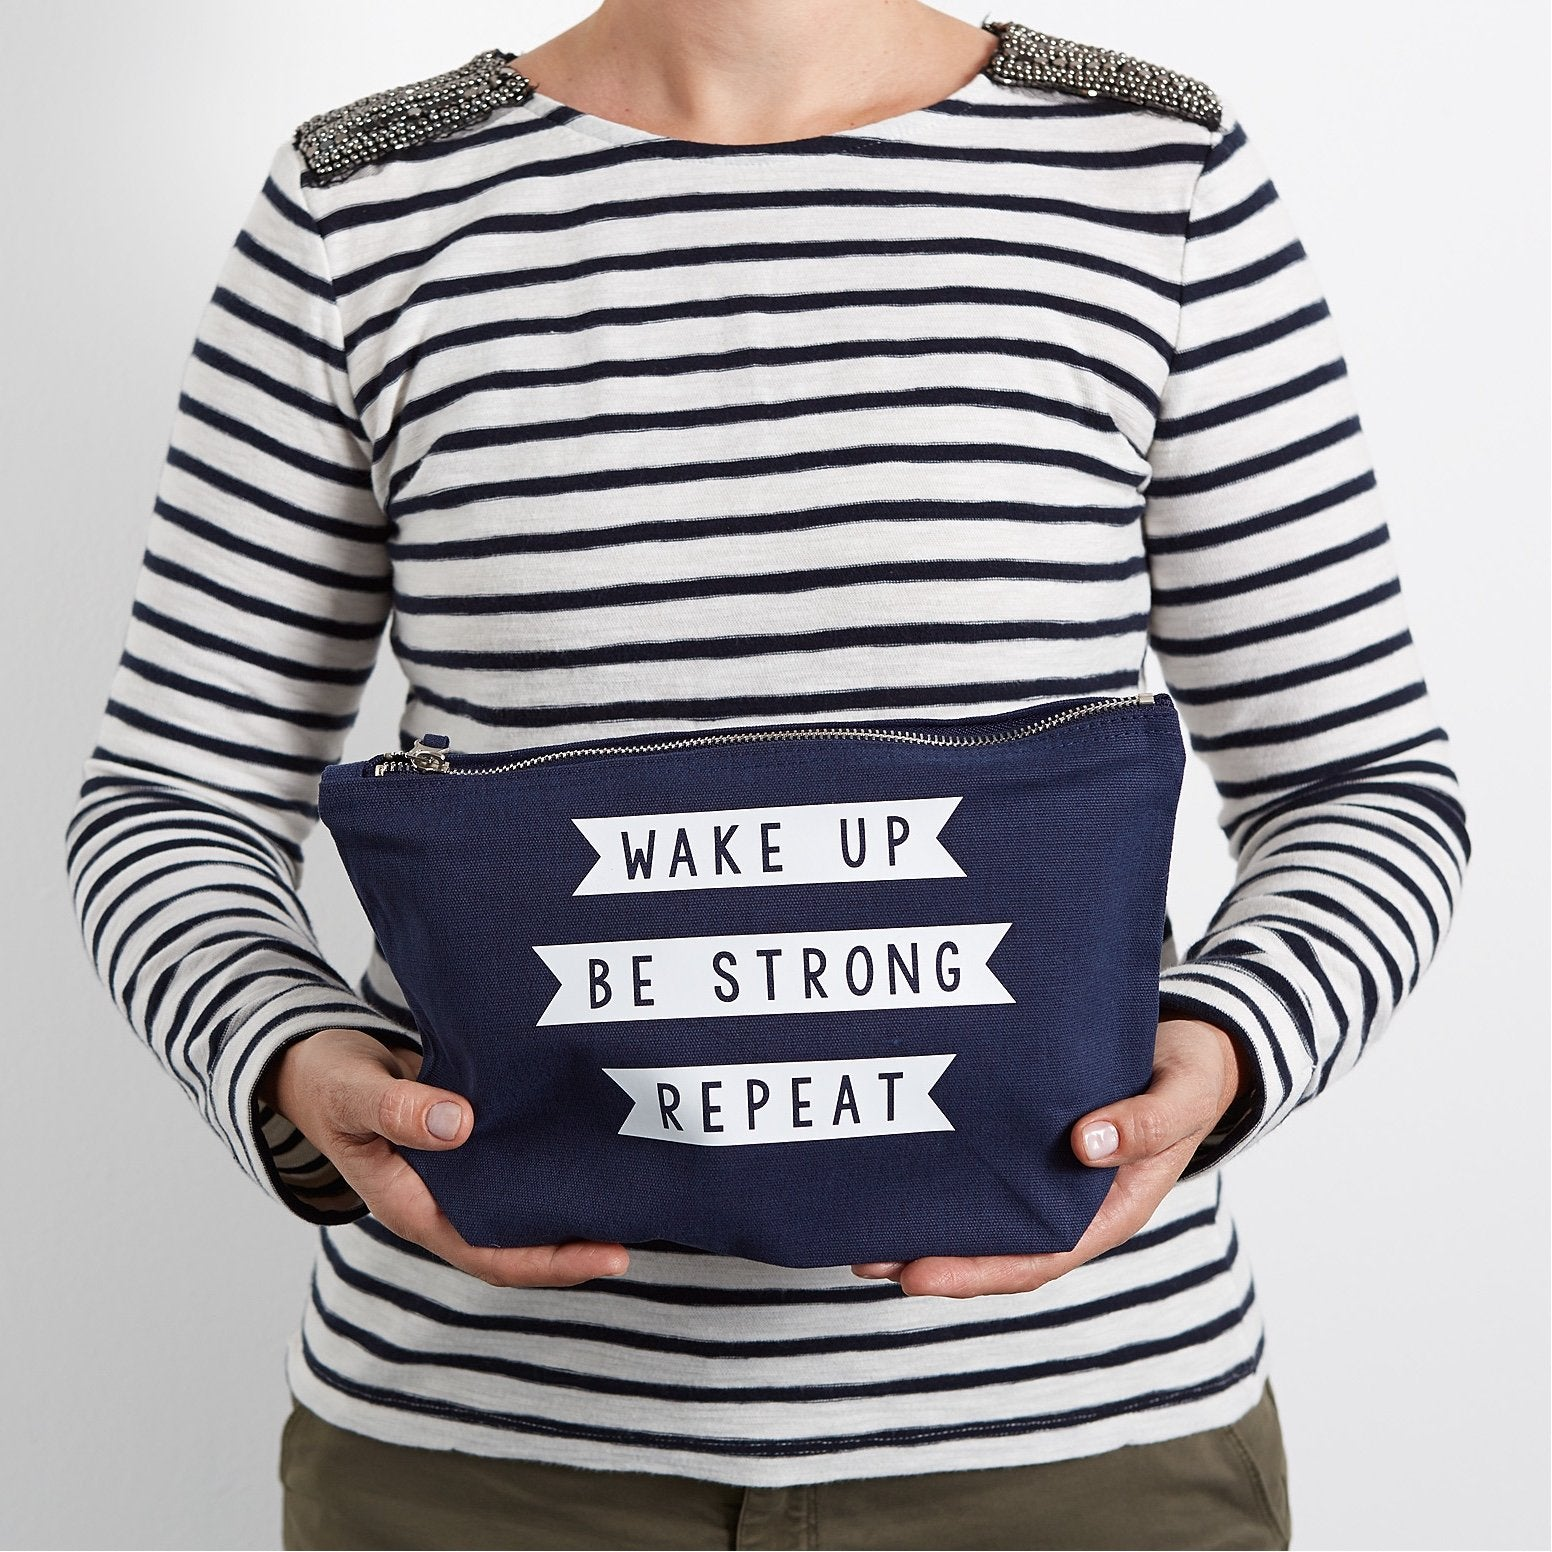 Wake Up, Be Strong, Repeat Make Up Pouch/Accessories Case